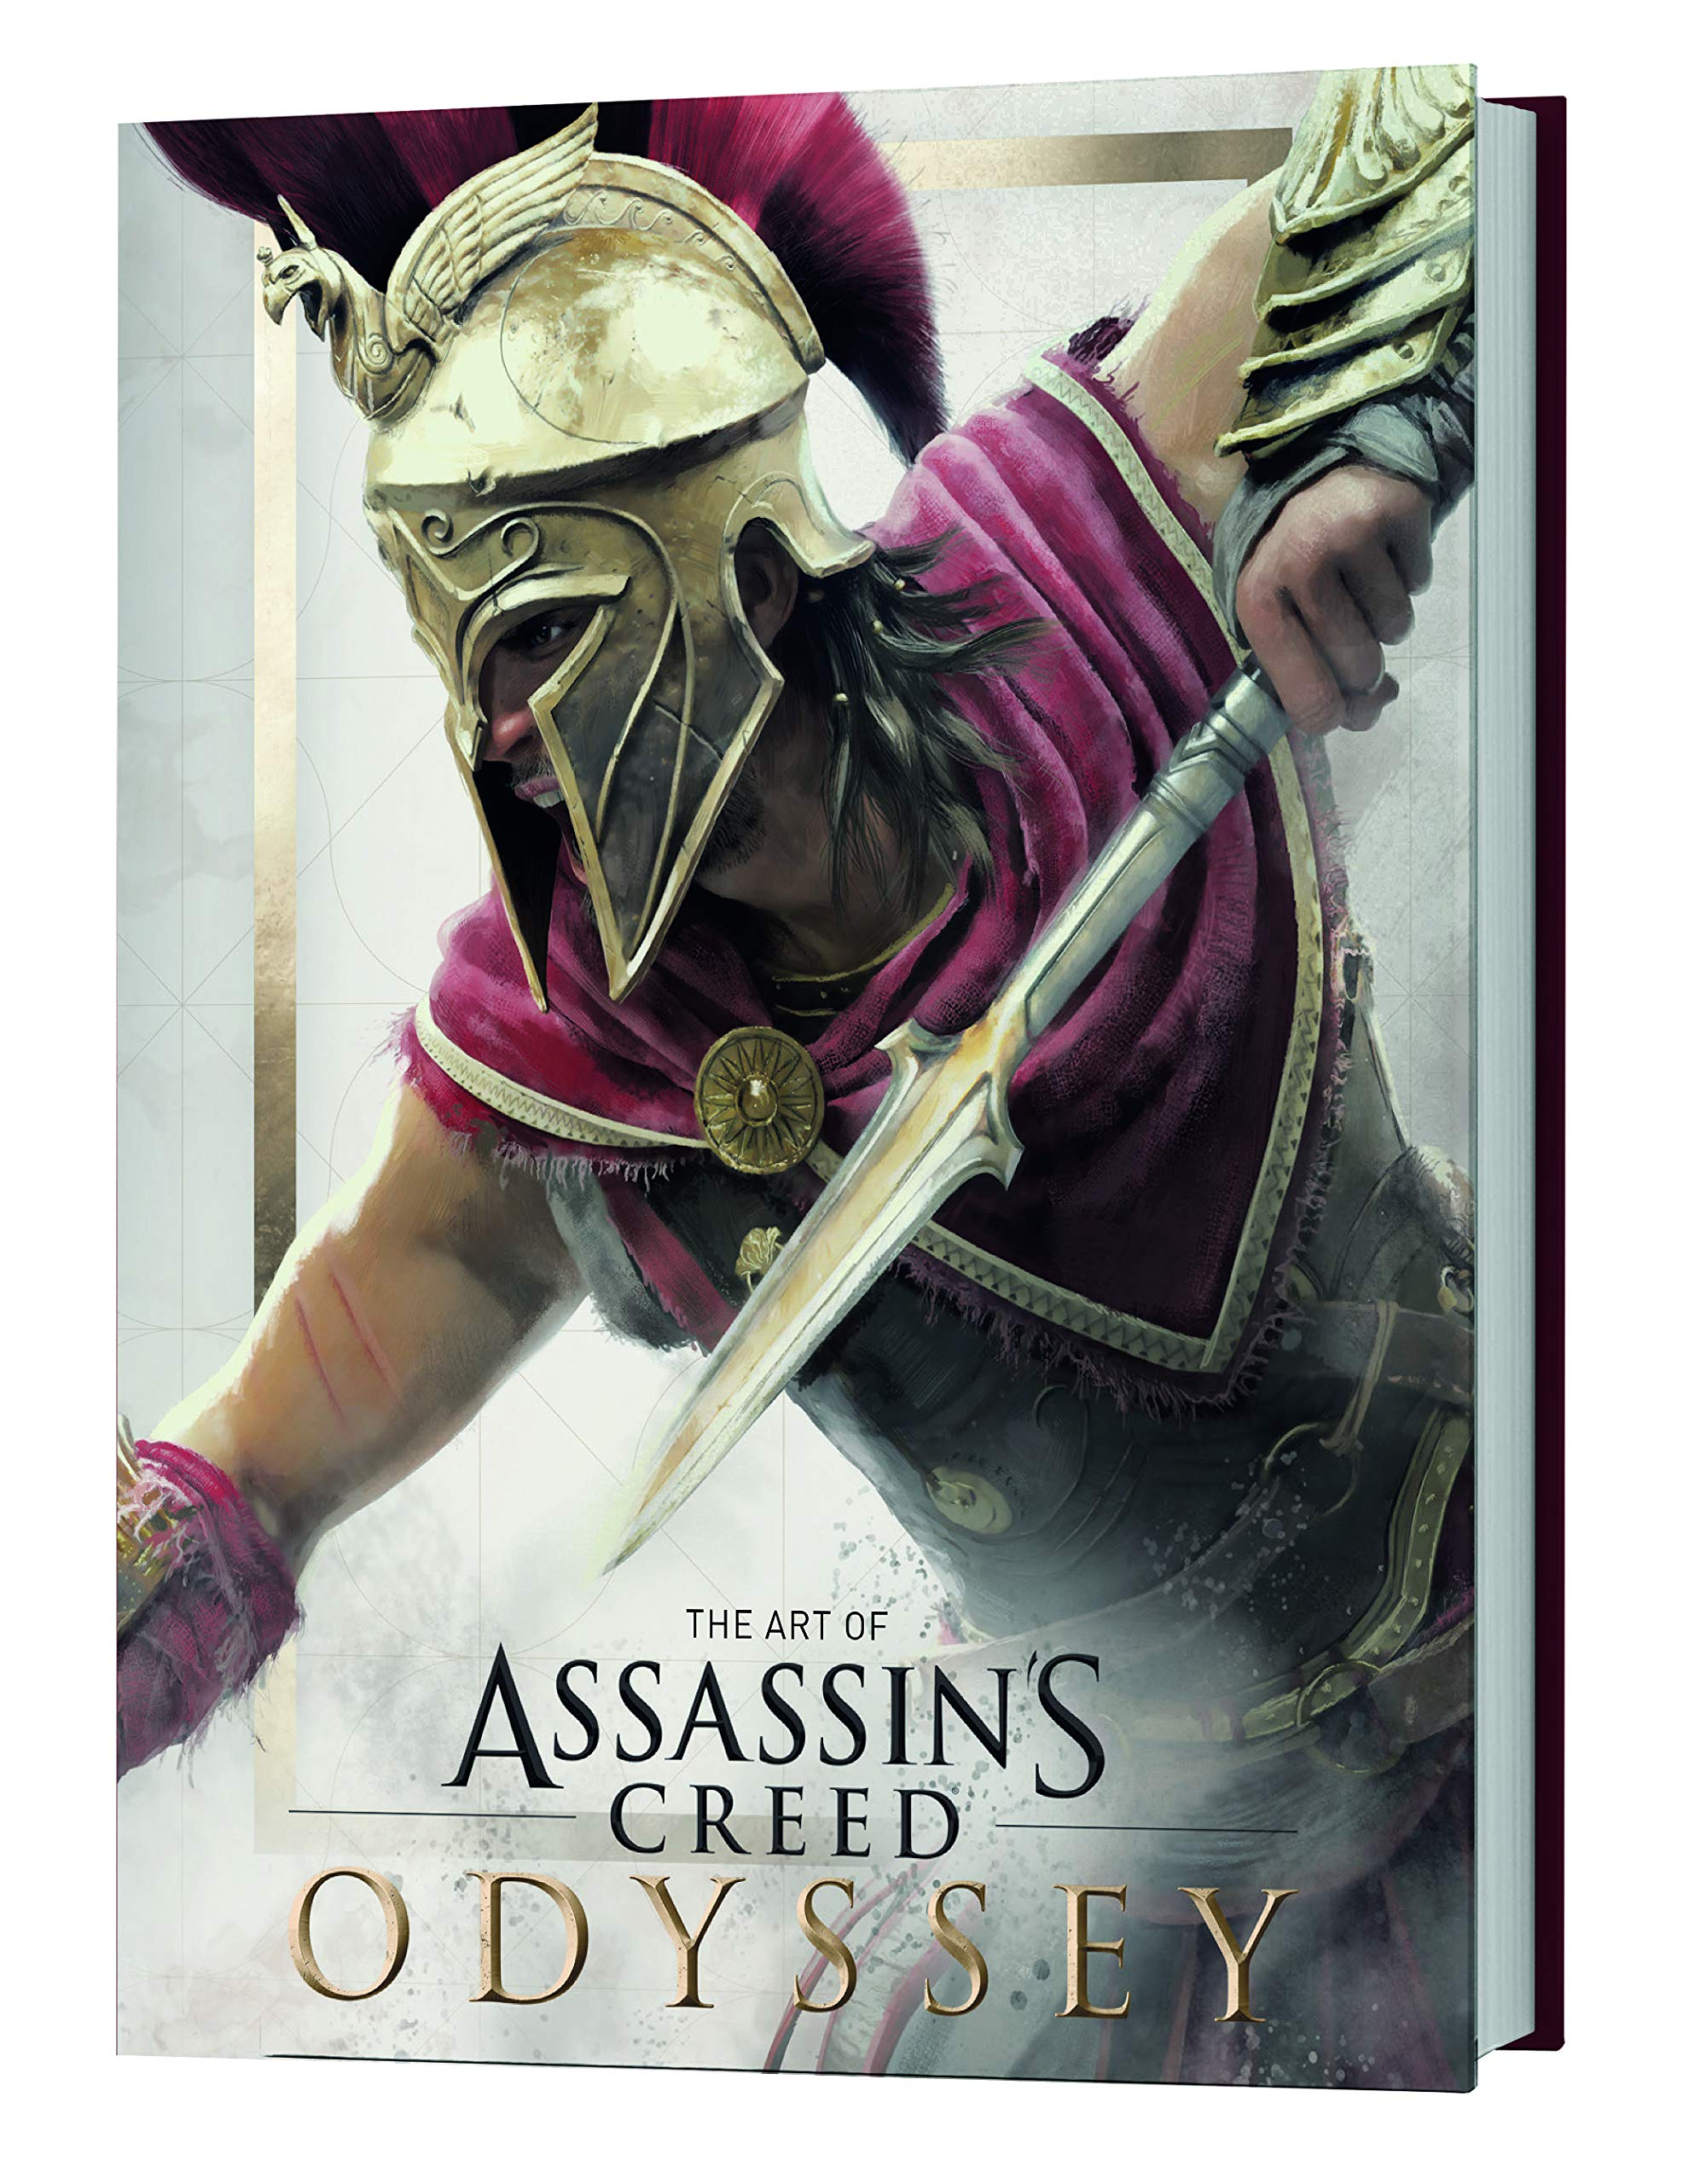 The Art of Assassin's Creed Odyssey thumbnail